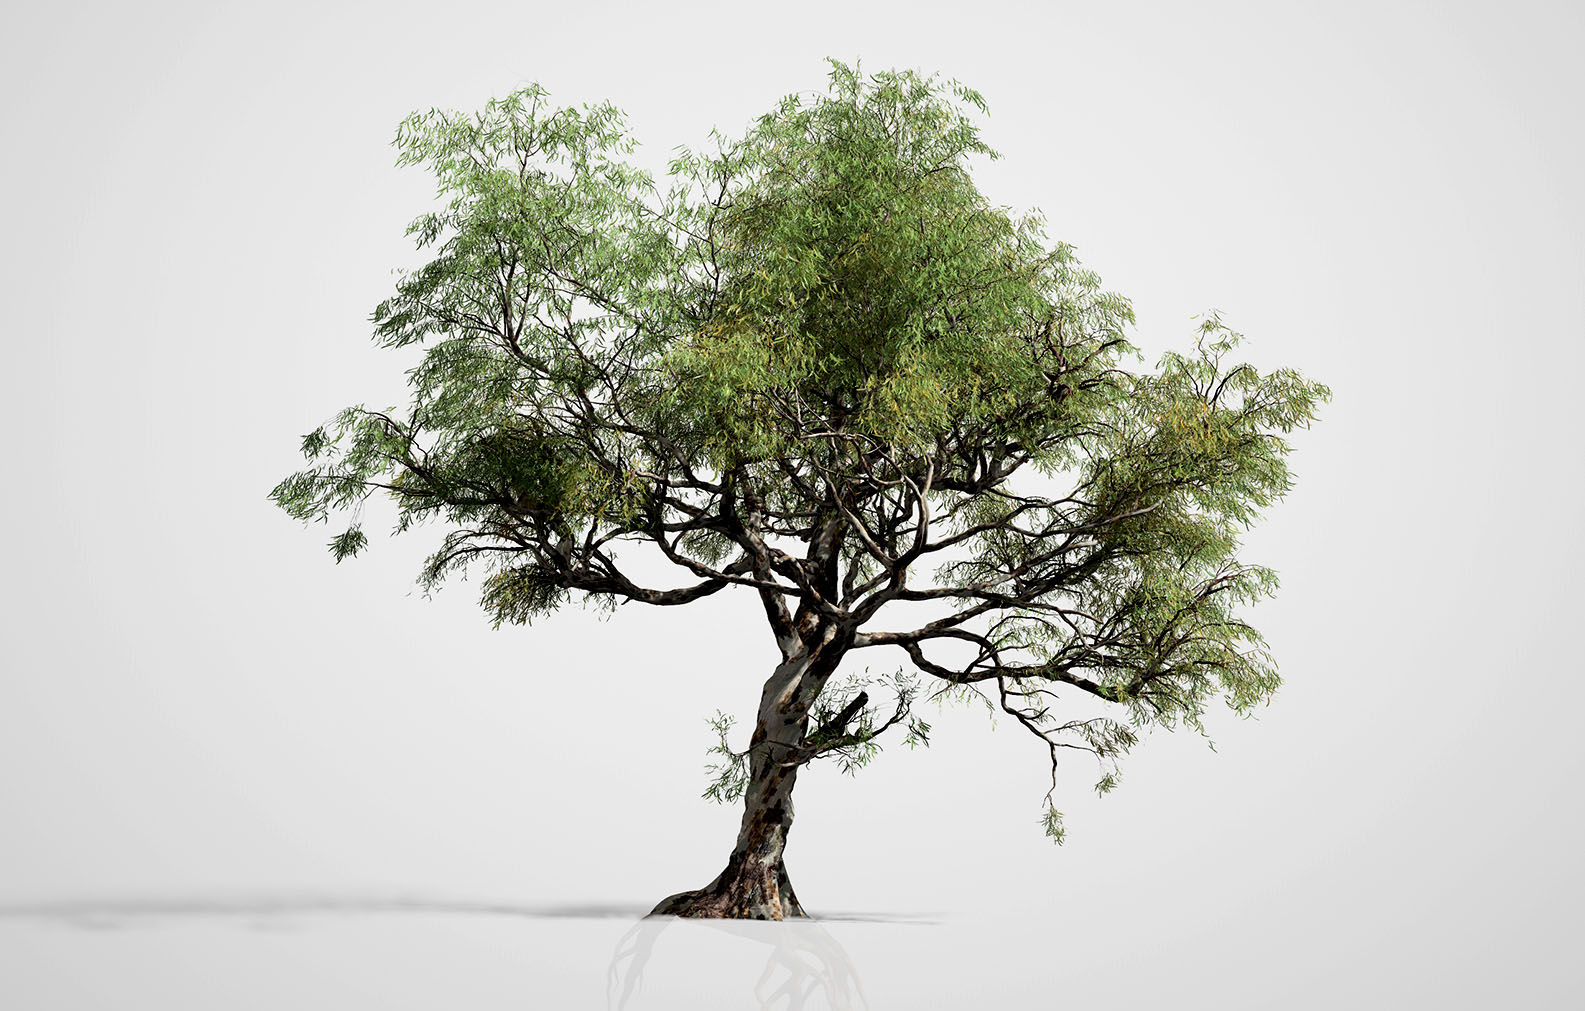 SpeedTree Cinema 8 Evaluation – SpeedTree